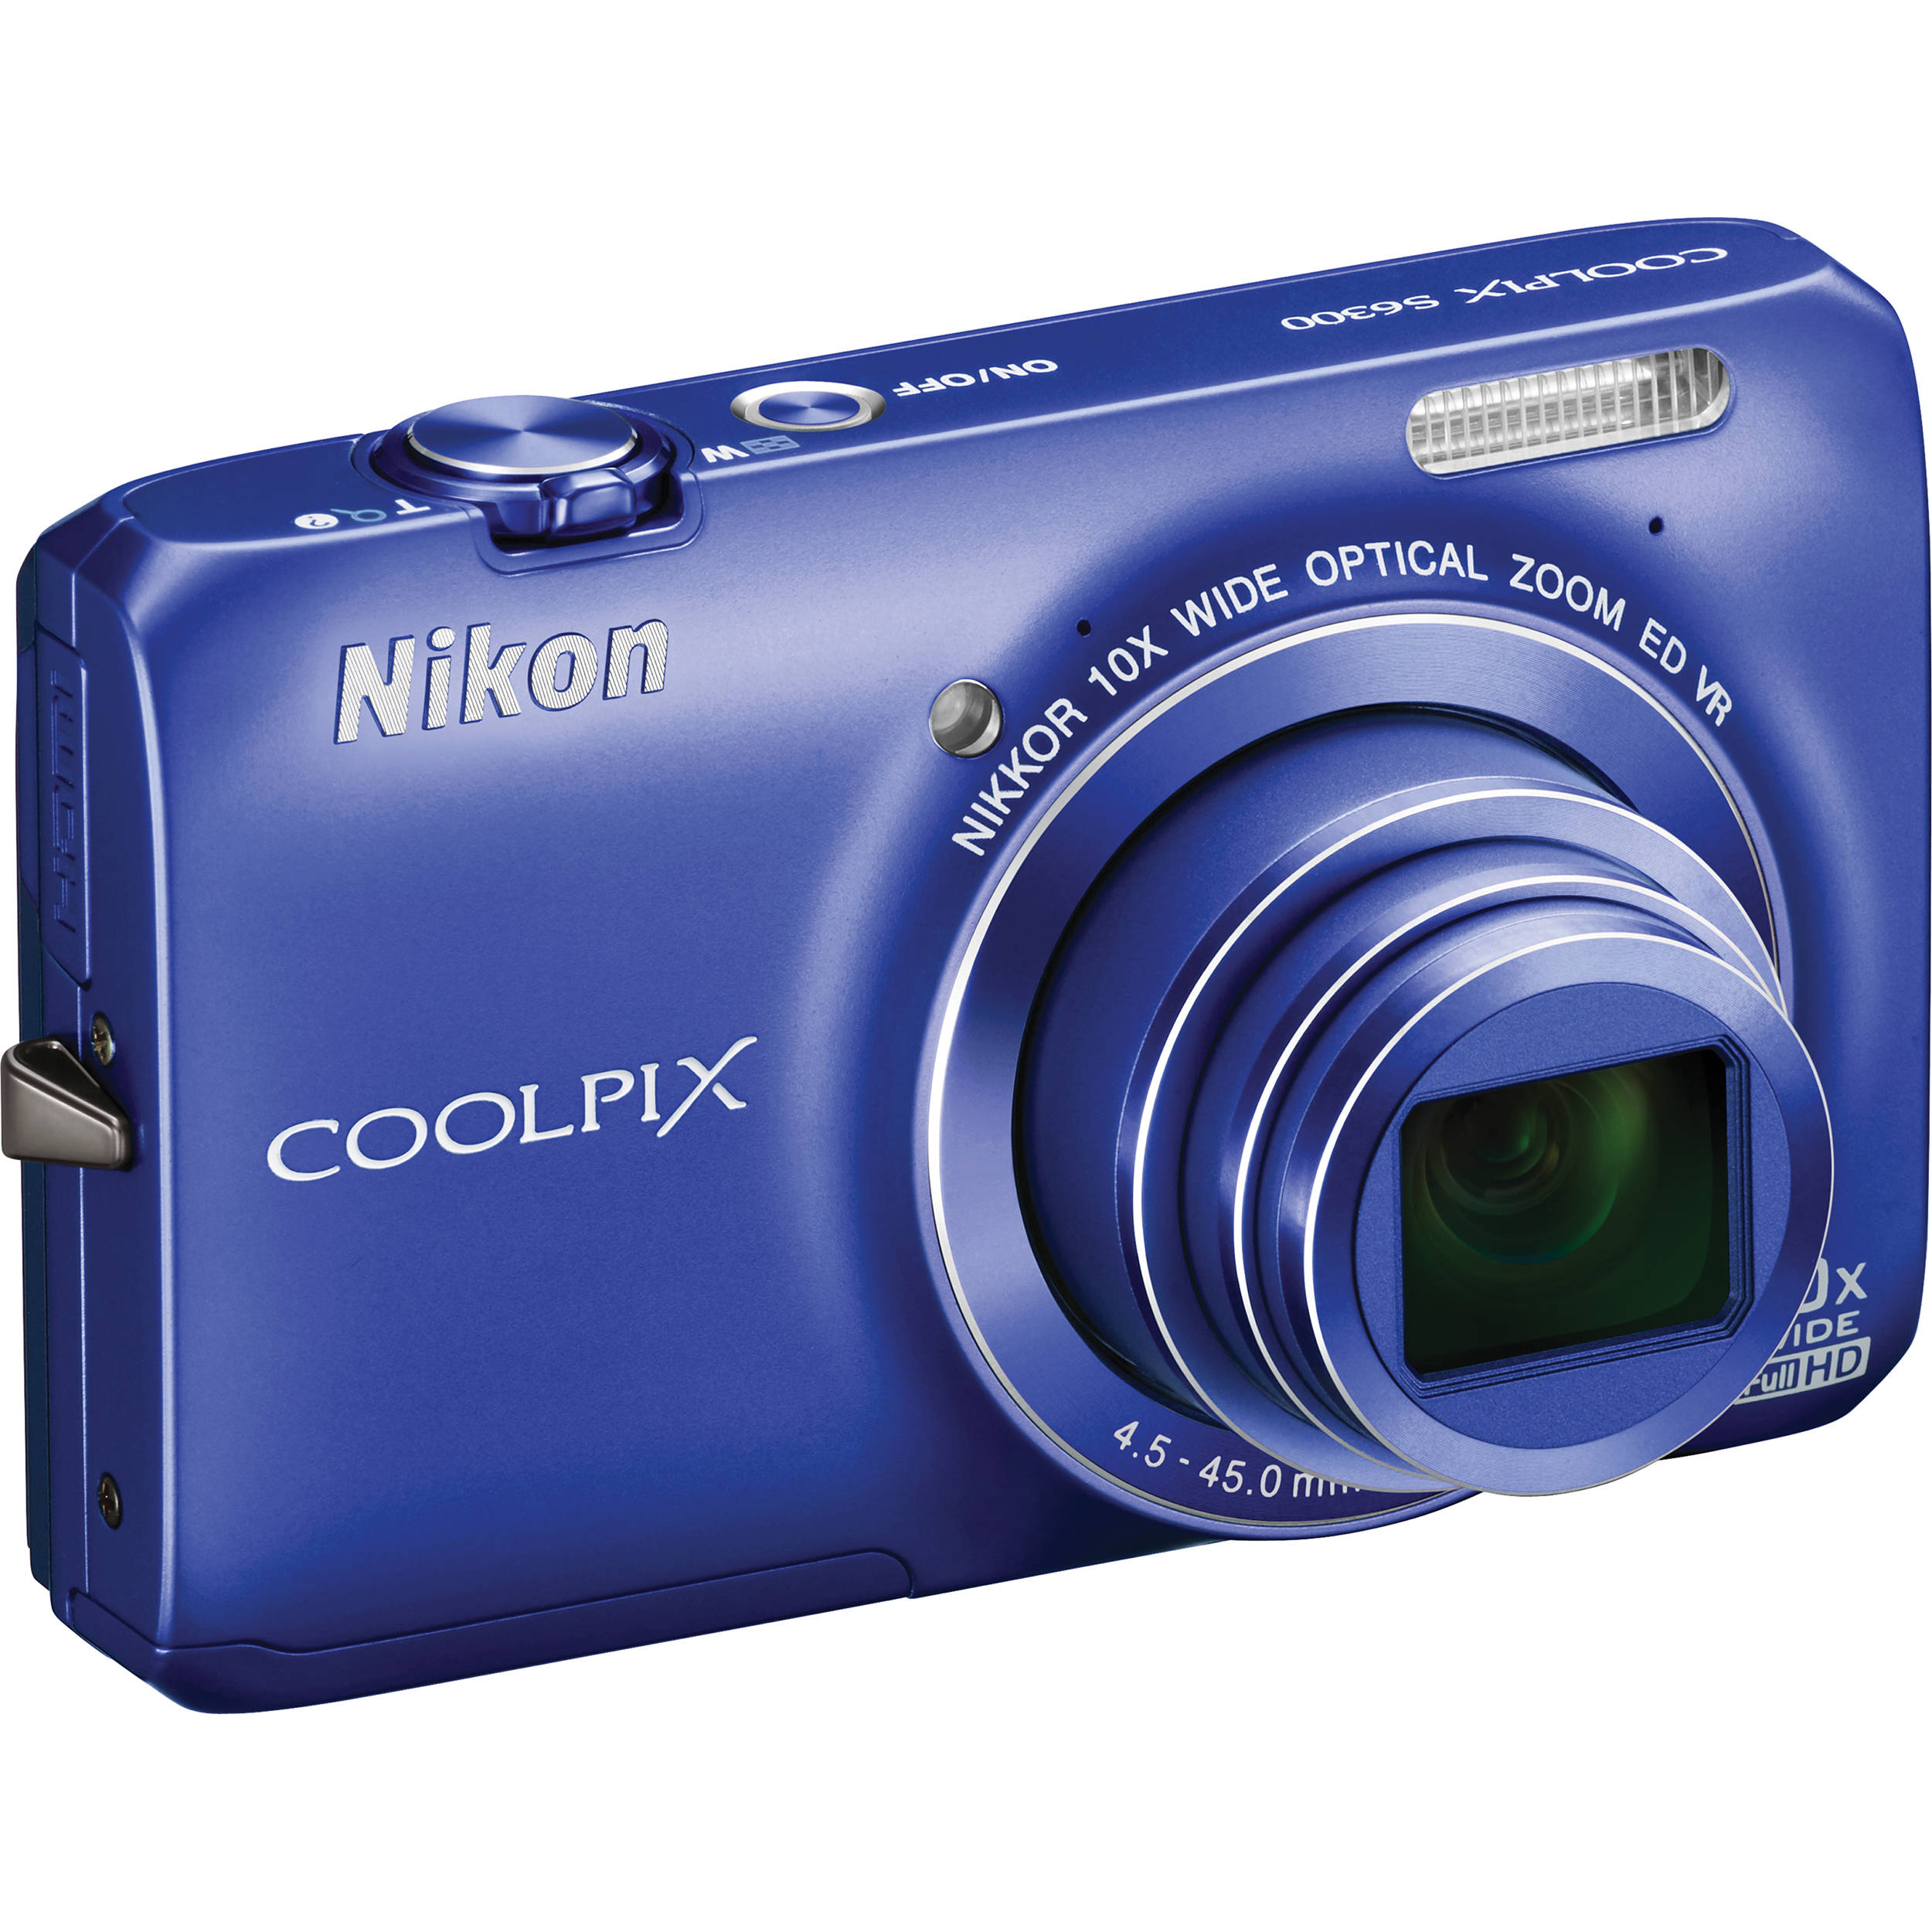 nikon coolpix s6300 digital camera blue 26302 b h photo video rh bhphotovideo com Nikon Coolpix S3100 Digital Camera Nikon Coolpix Owners Manual 2000